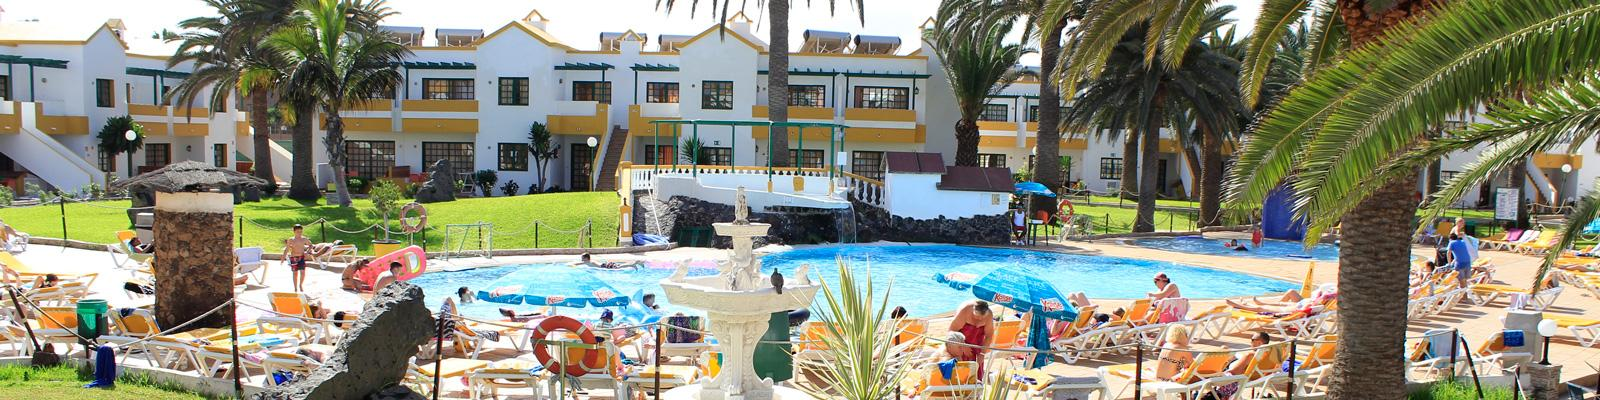 Corralejo Fuerteventura - All Inclusive Dunas Caleta Apartments